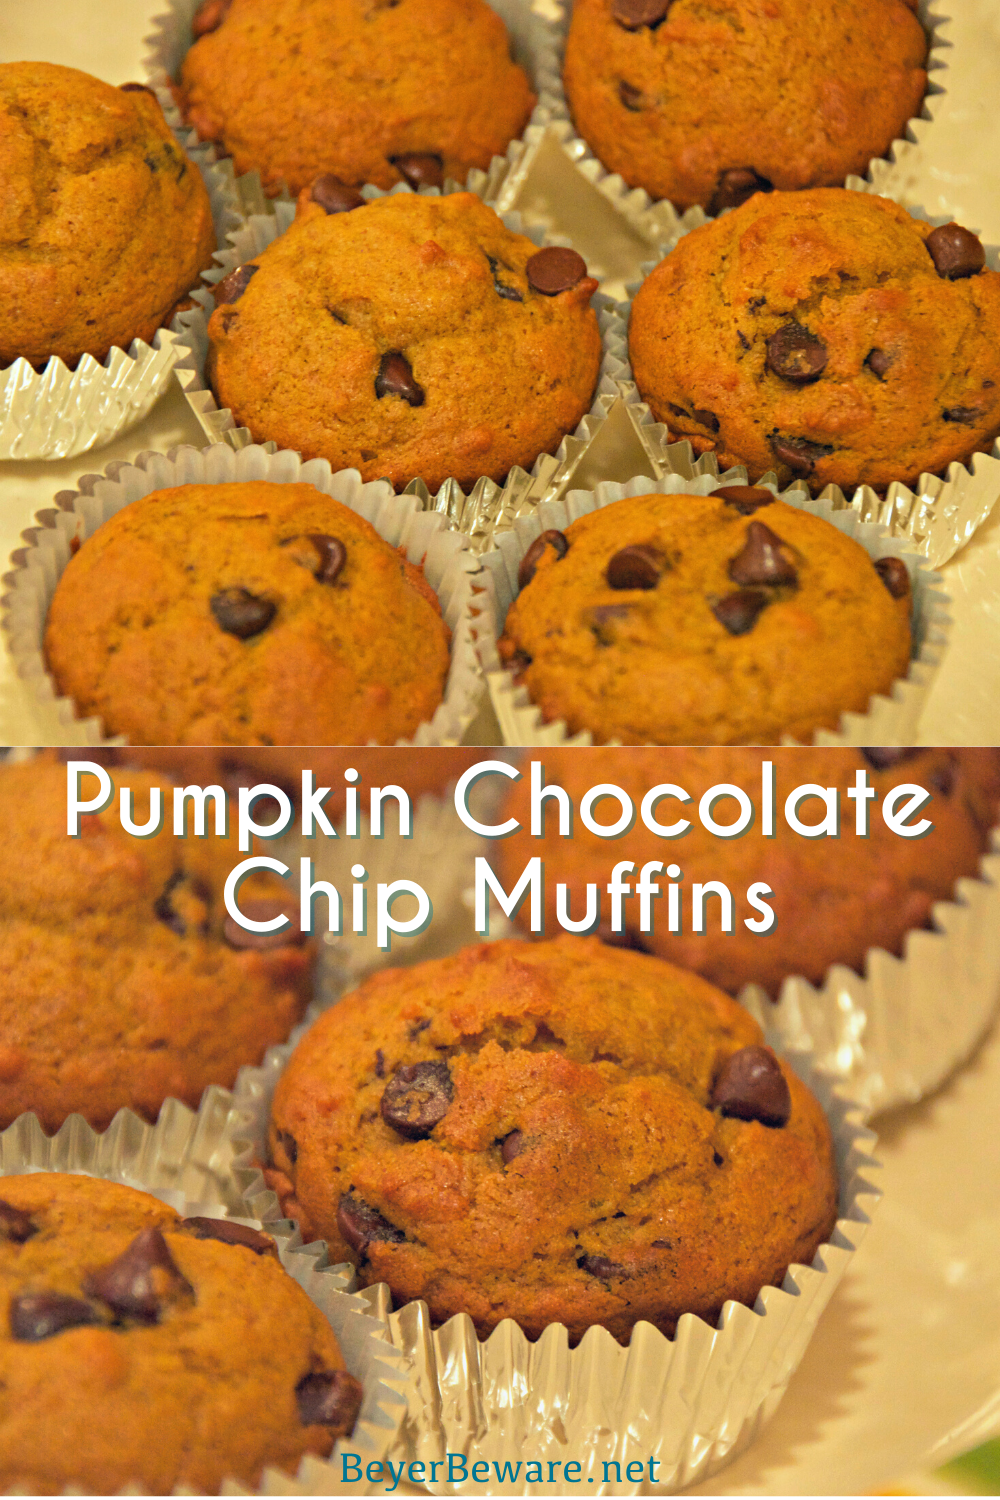 Pumpkin chocolate chip muffins are a staple of fall snacks and breakfast made from scratch with canned pumpkin and plenty of chocolate chips to make the kids feel like they aren't eating healthy food.